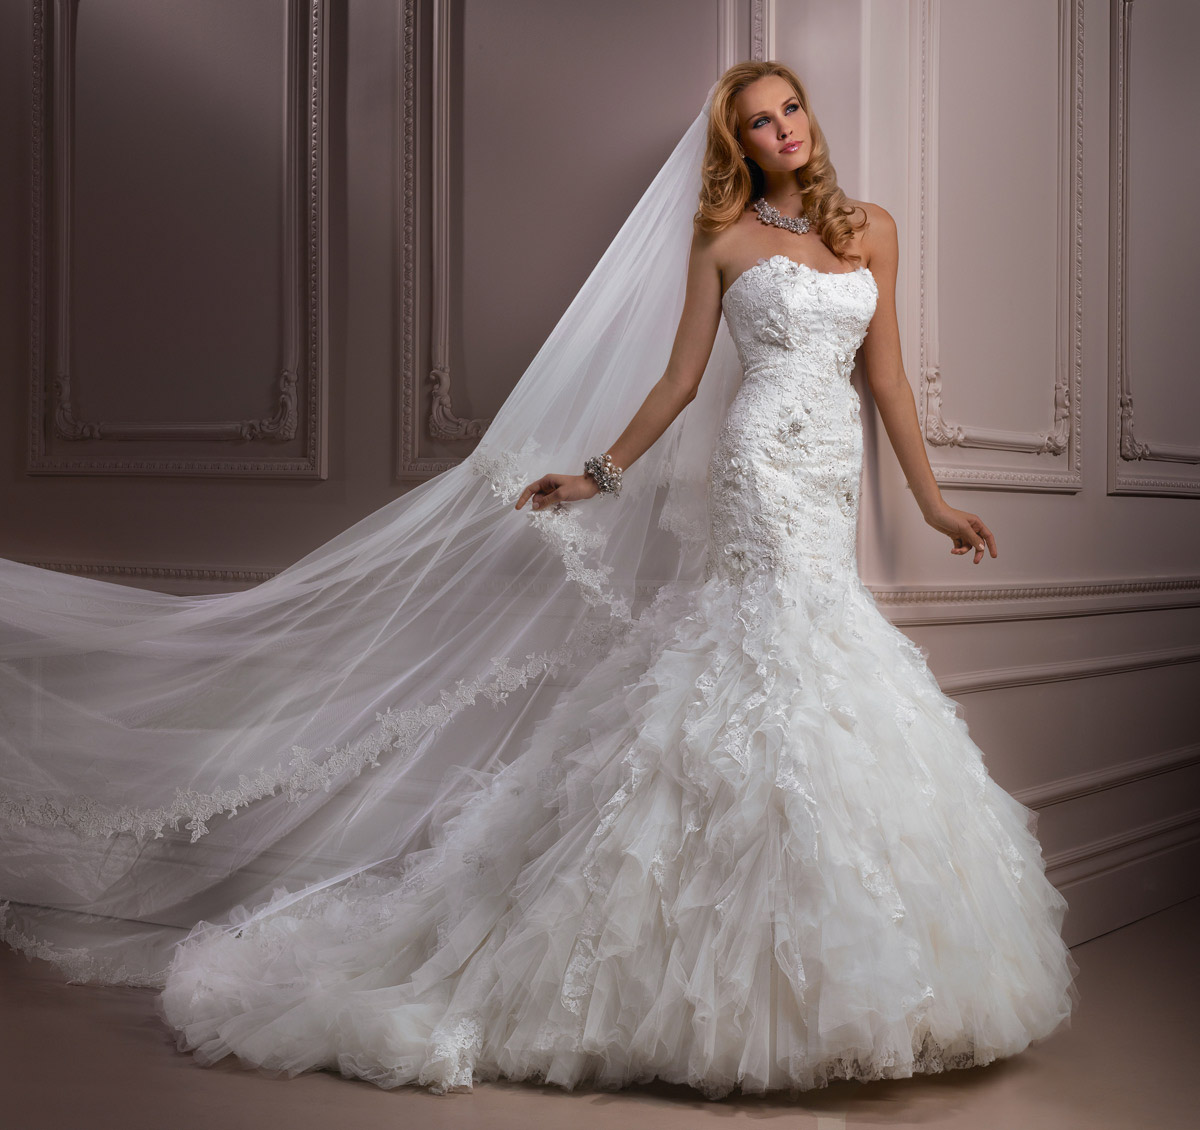 Bridal Gowns Concord Nh 13